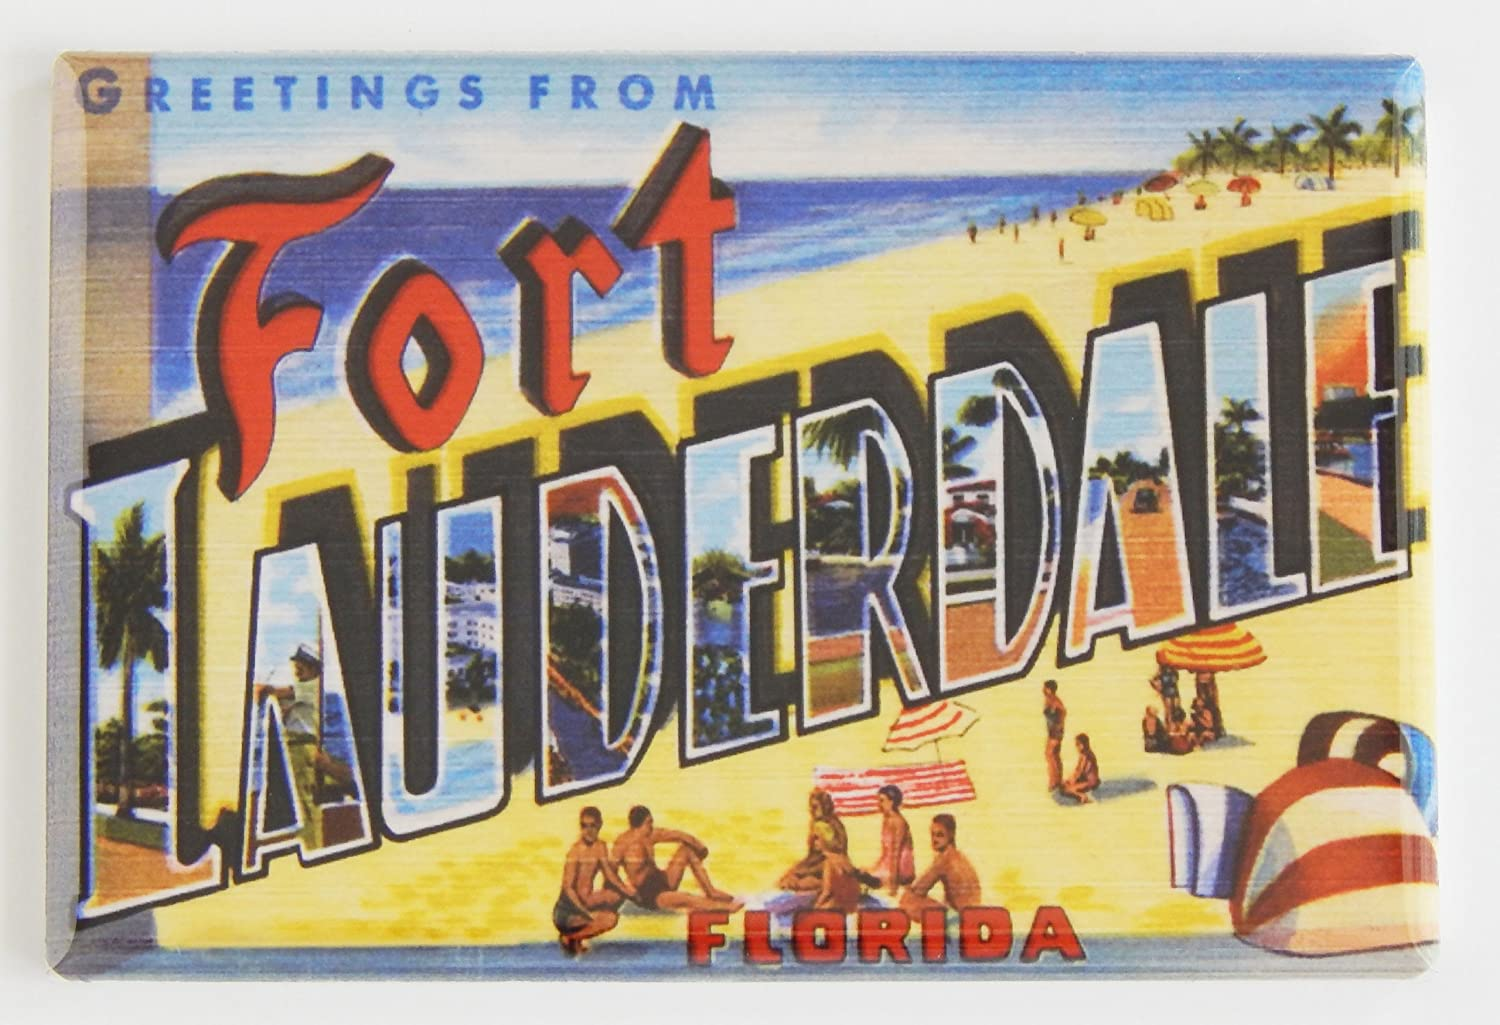 Greetings From Fort Lauderdale Florida Fridge Magnet (2 x 3 inches)